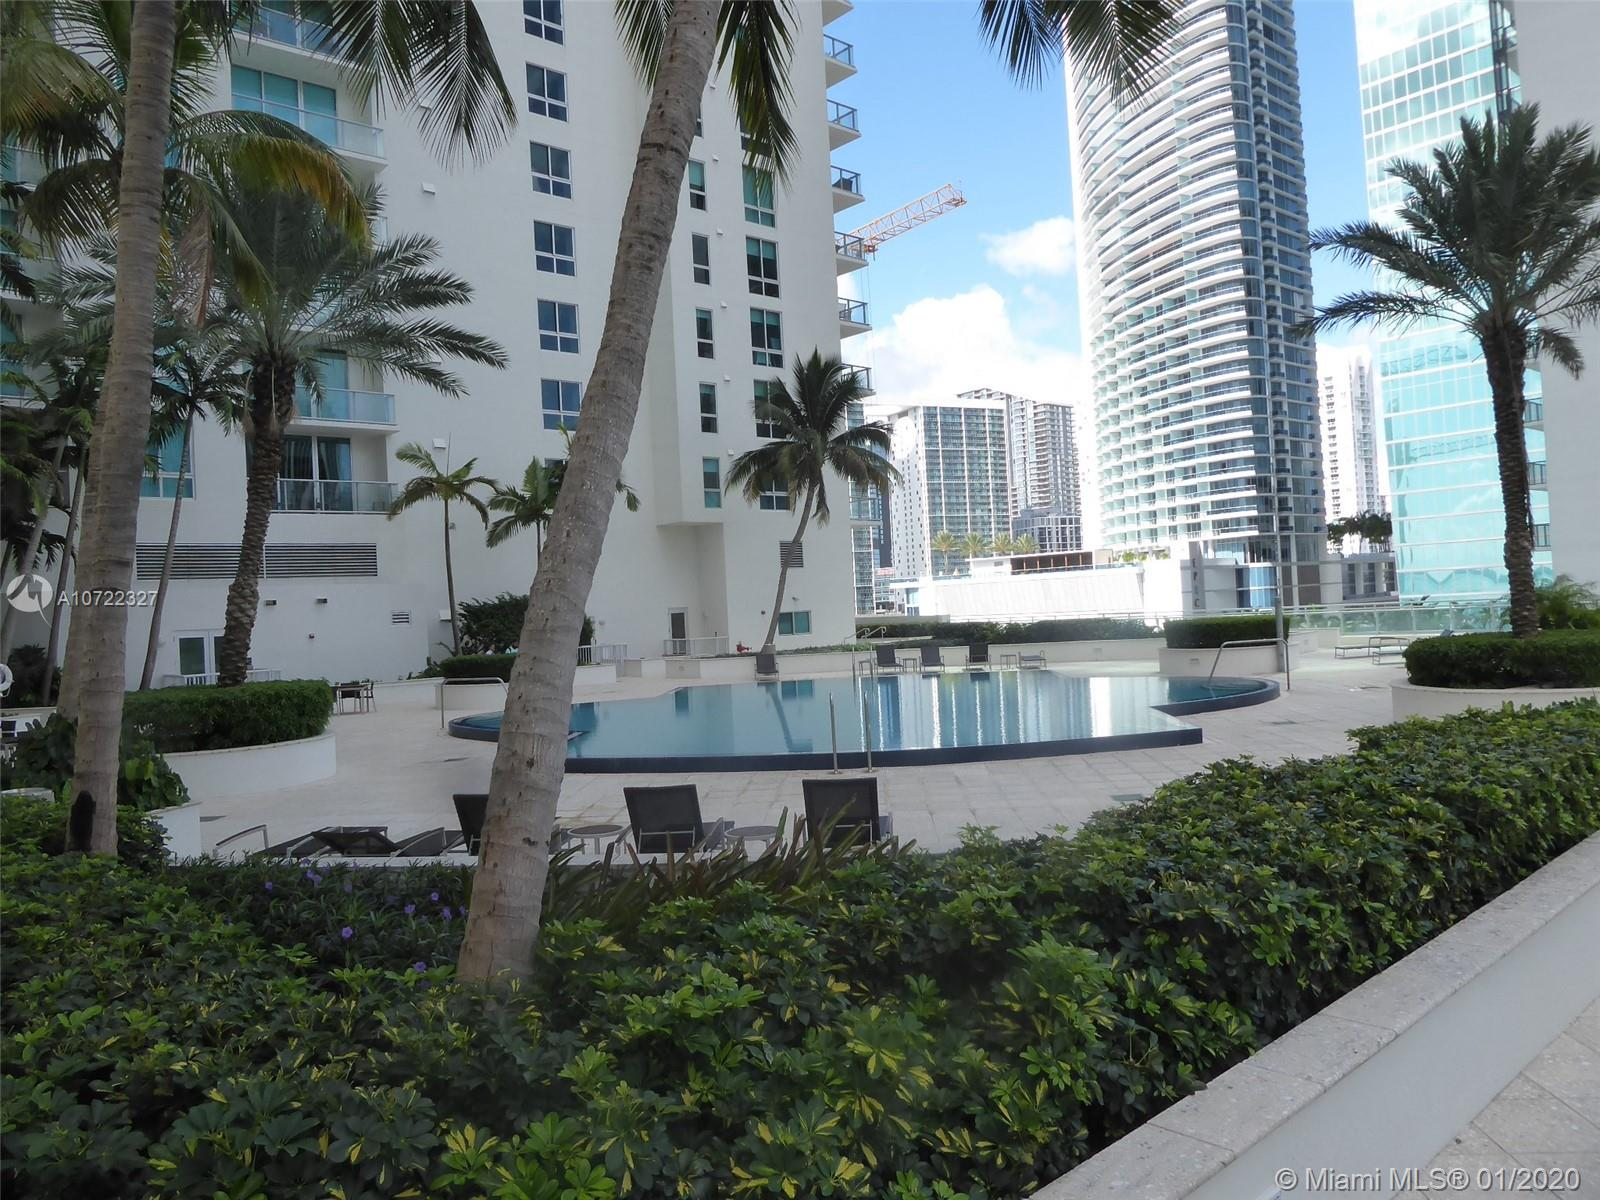 300 Biscayne blvd-PH 3802 miami-fl-33131-a10722327-Pic40